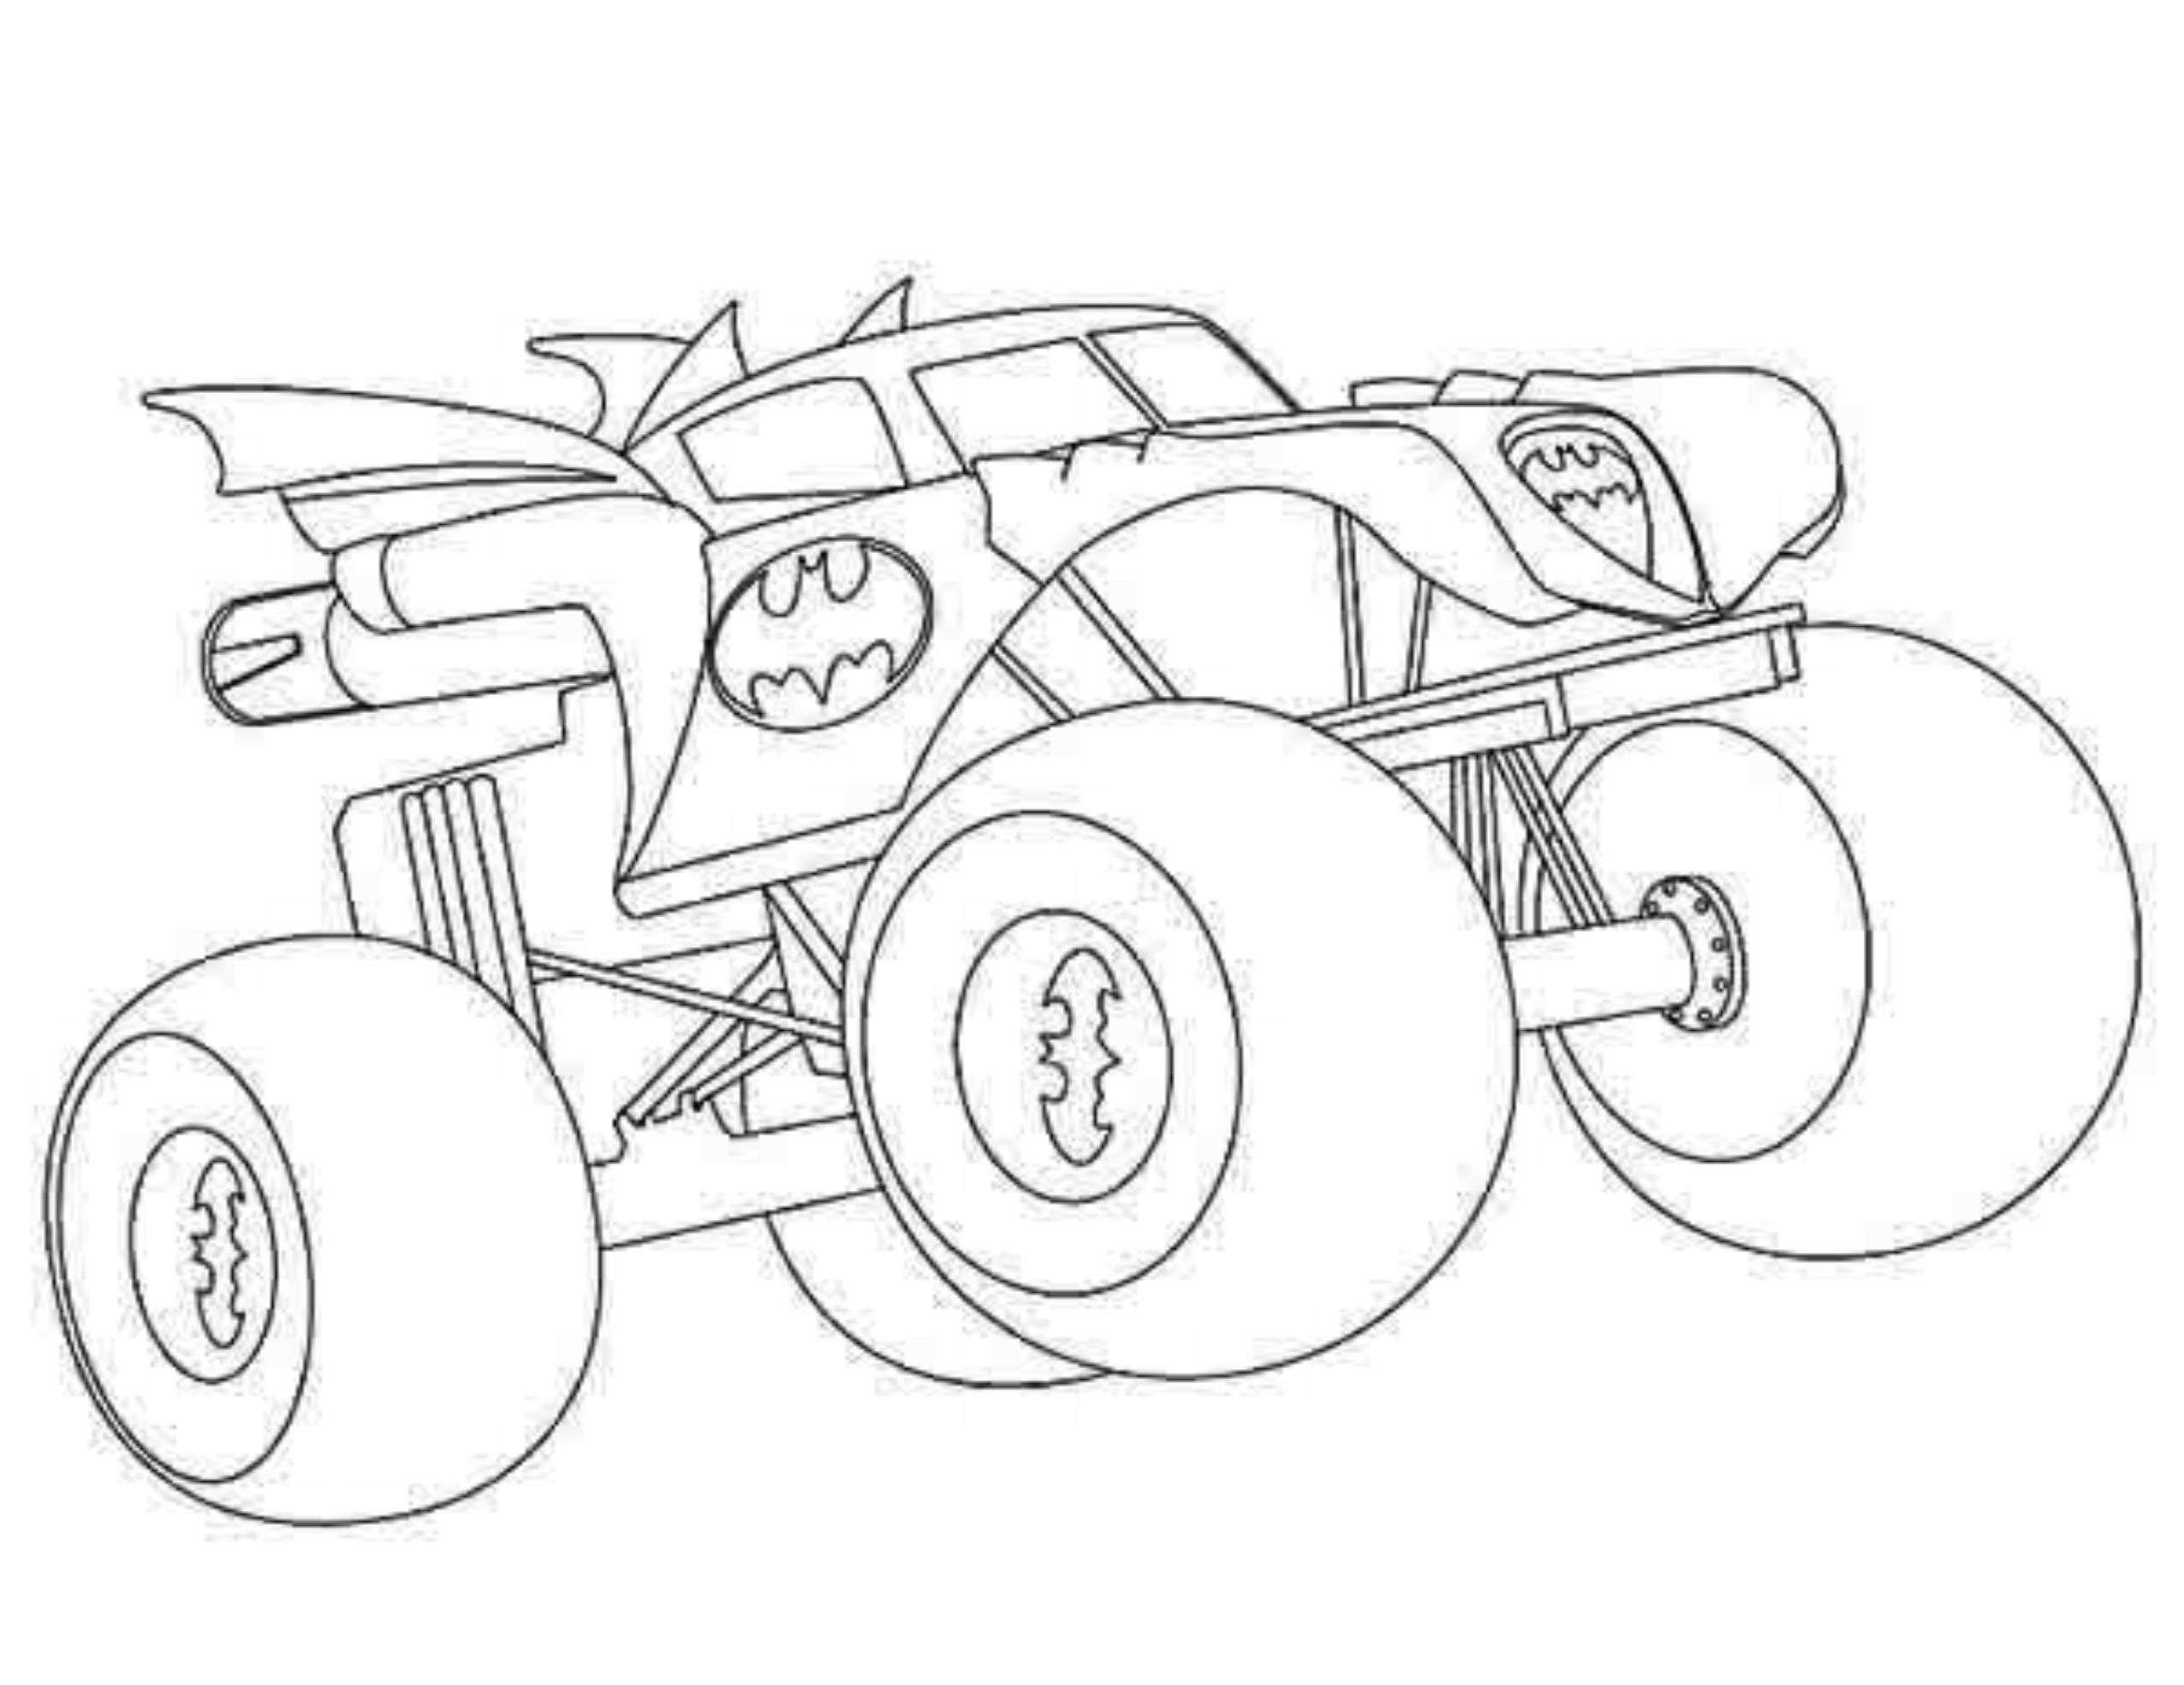 Pickup Truck Outline Drawing At Getdrawings